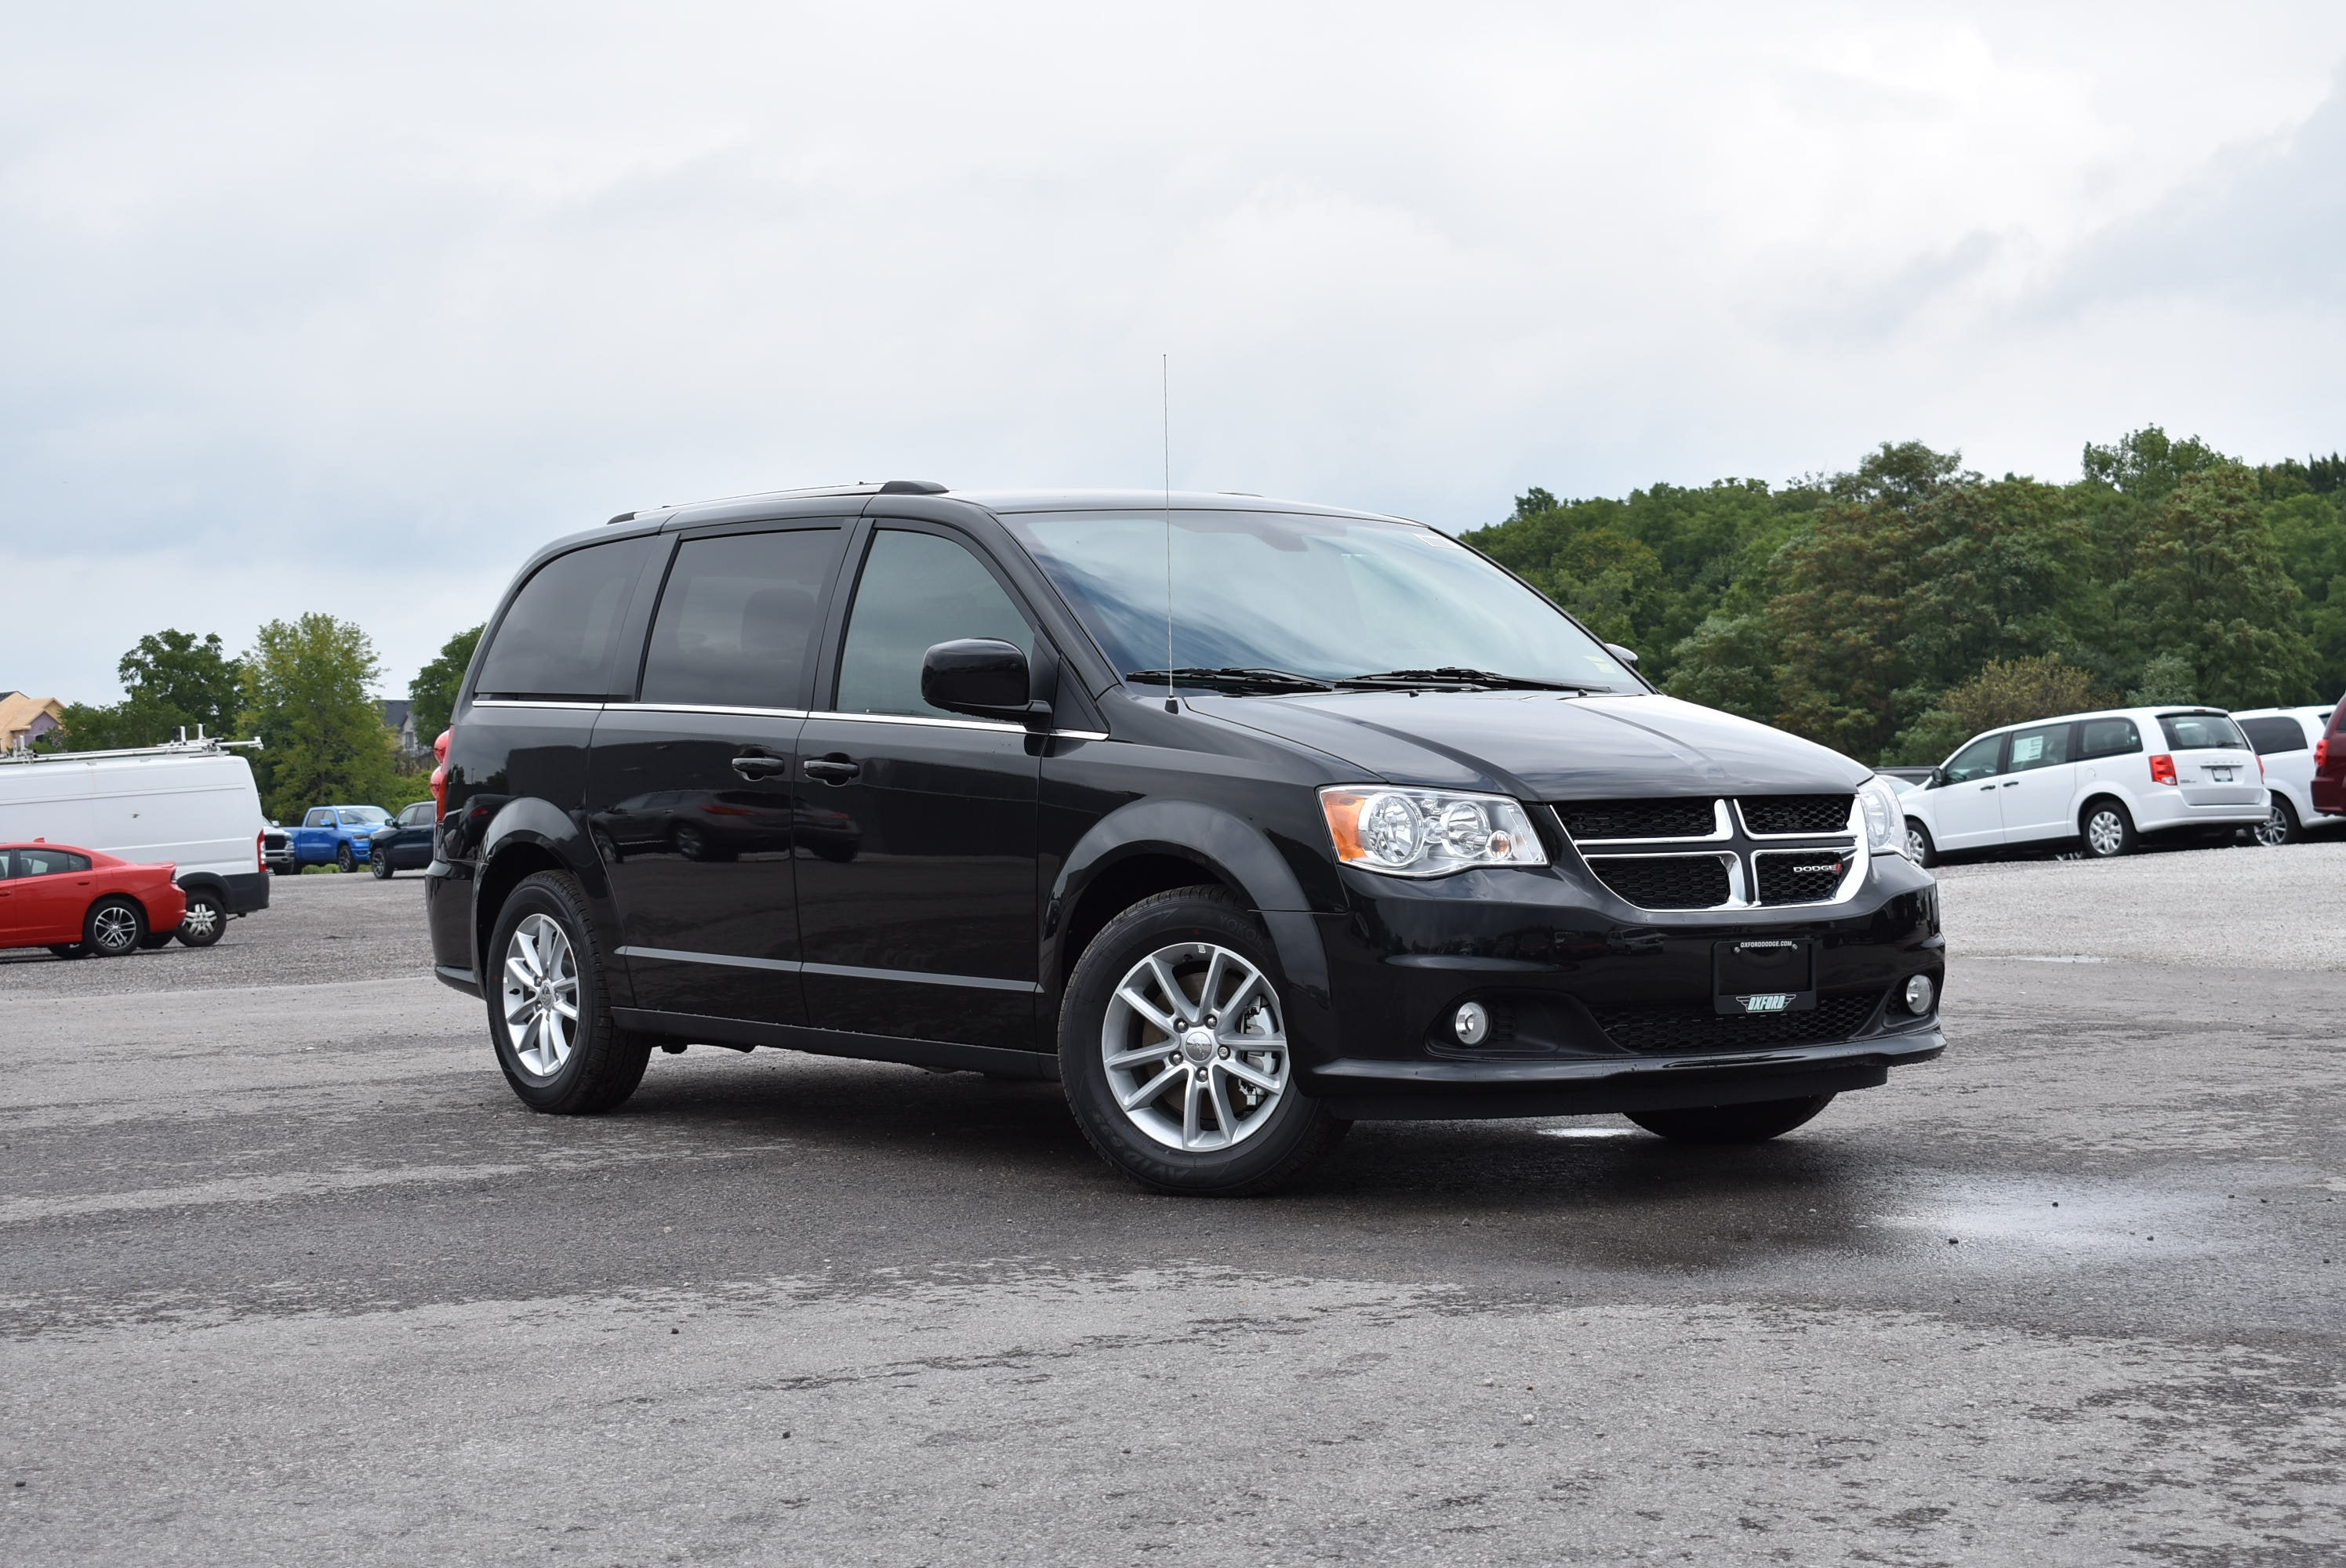 new 2020 Dodge Grand Caravan car, priced at $49,340